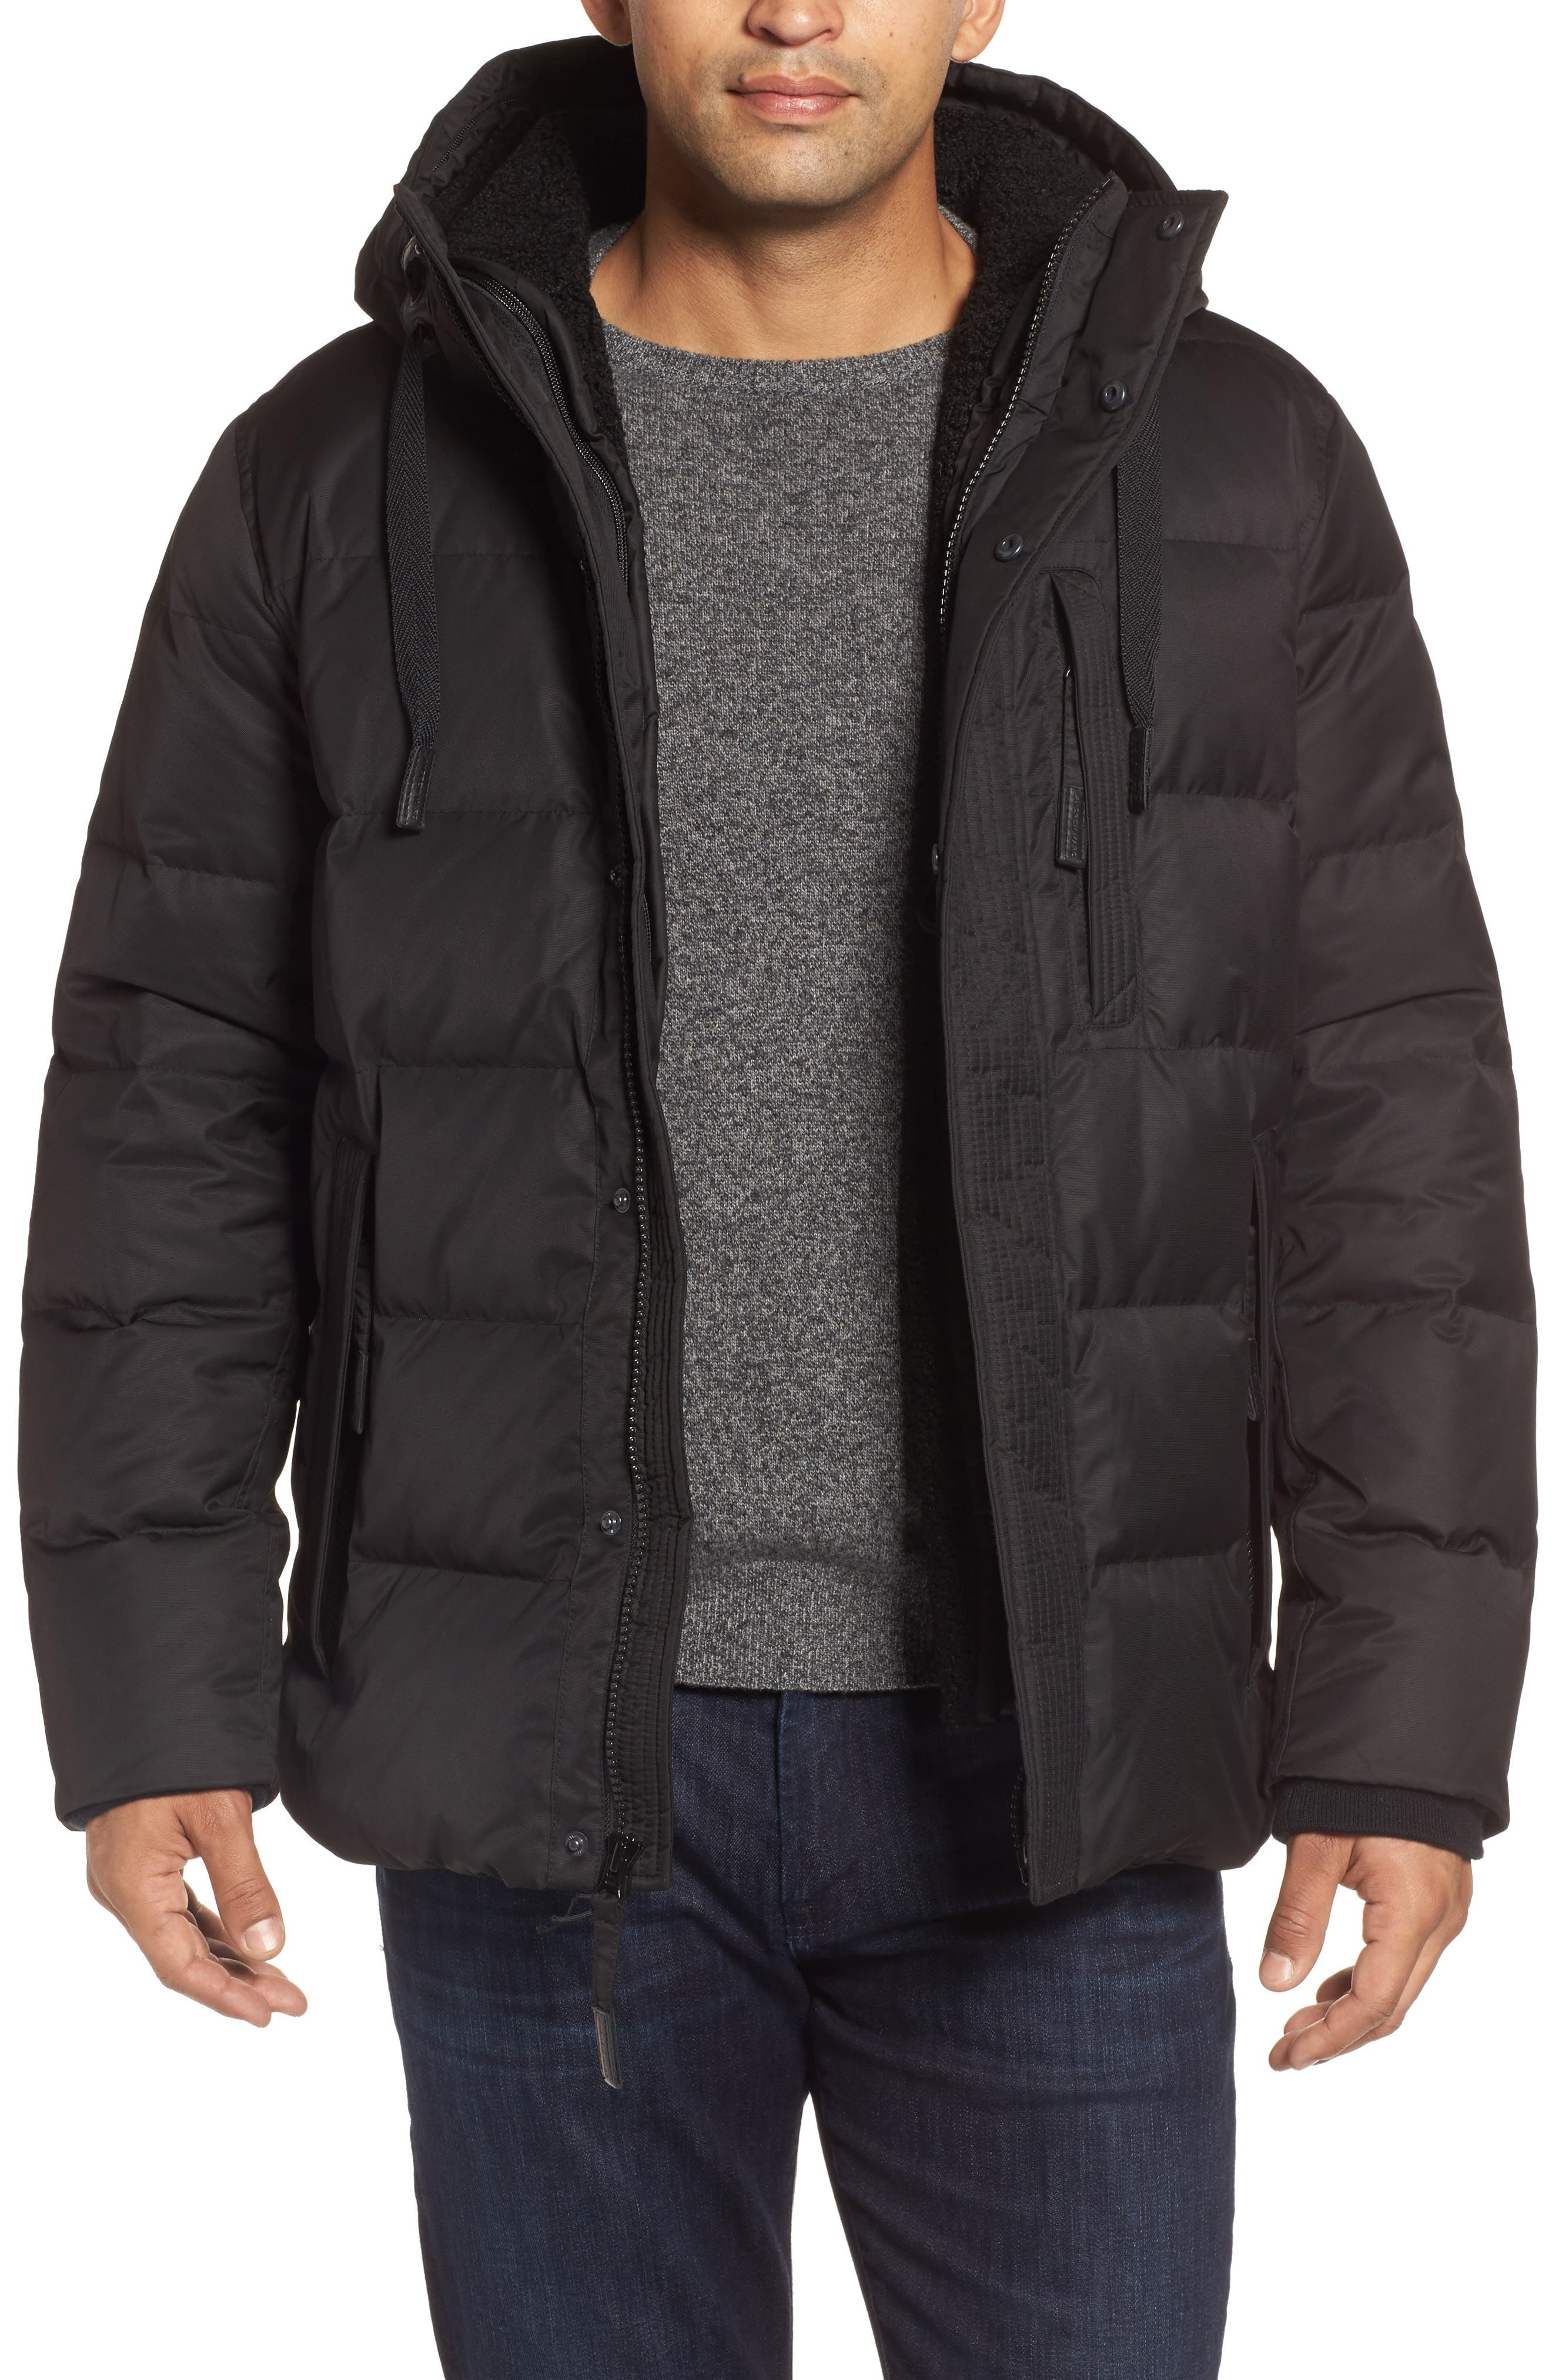 Groton Slim Down Jacket with Faux Shearling Lining,                         Main,                         color,